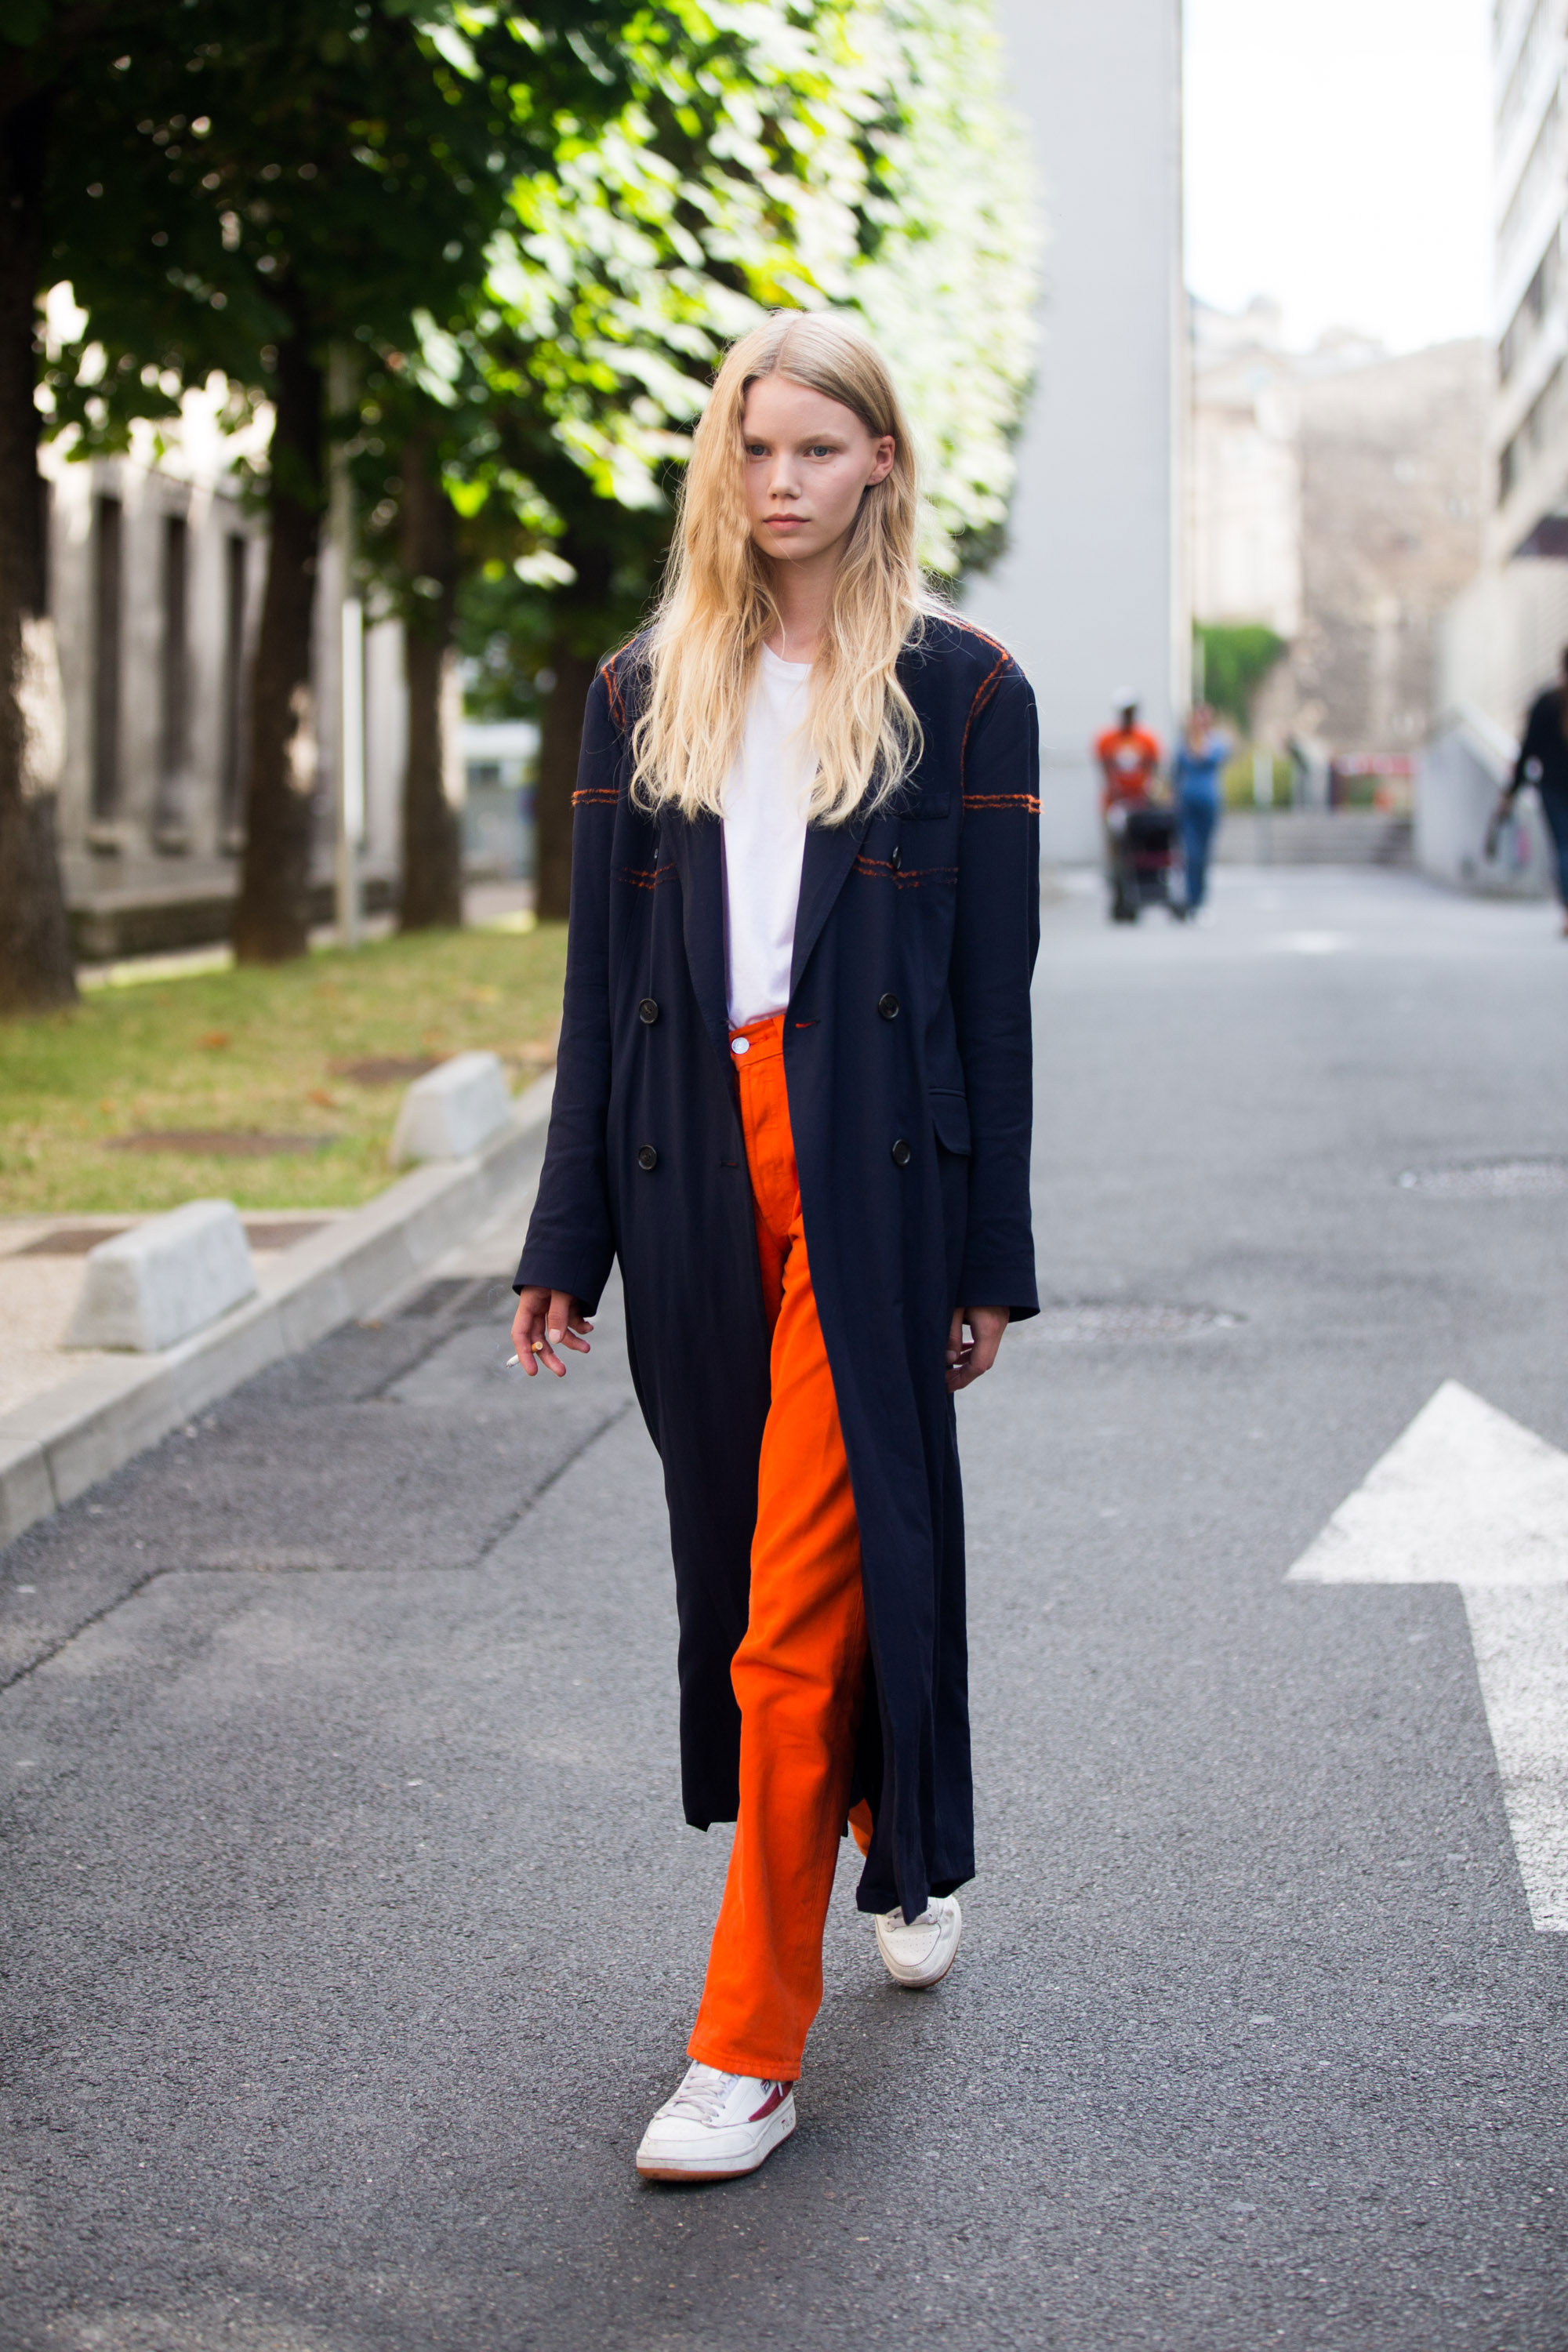 How To Wear Sneakers With Everything Thefashionspot